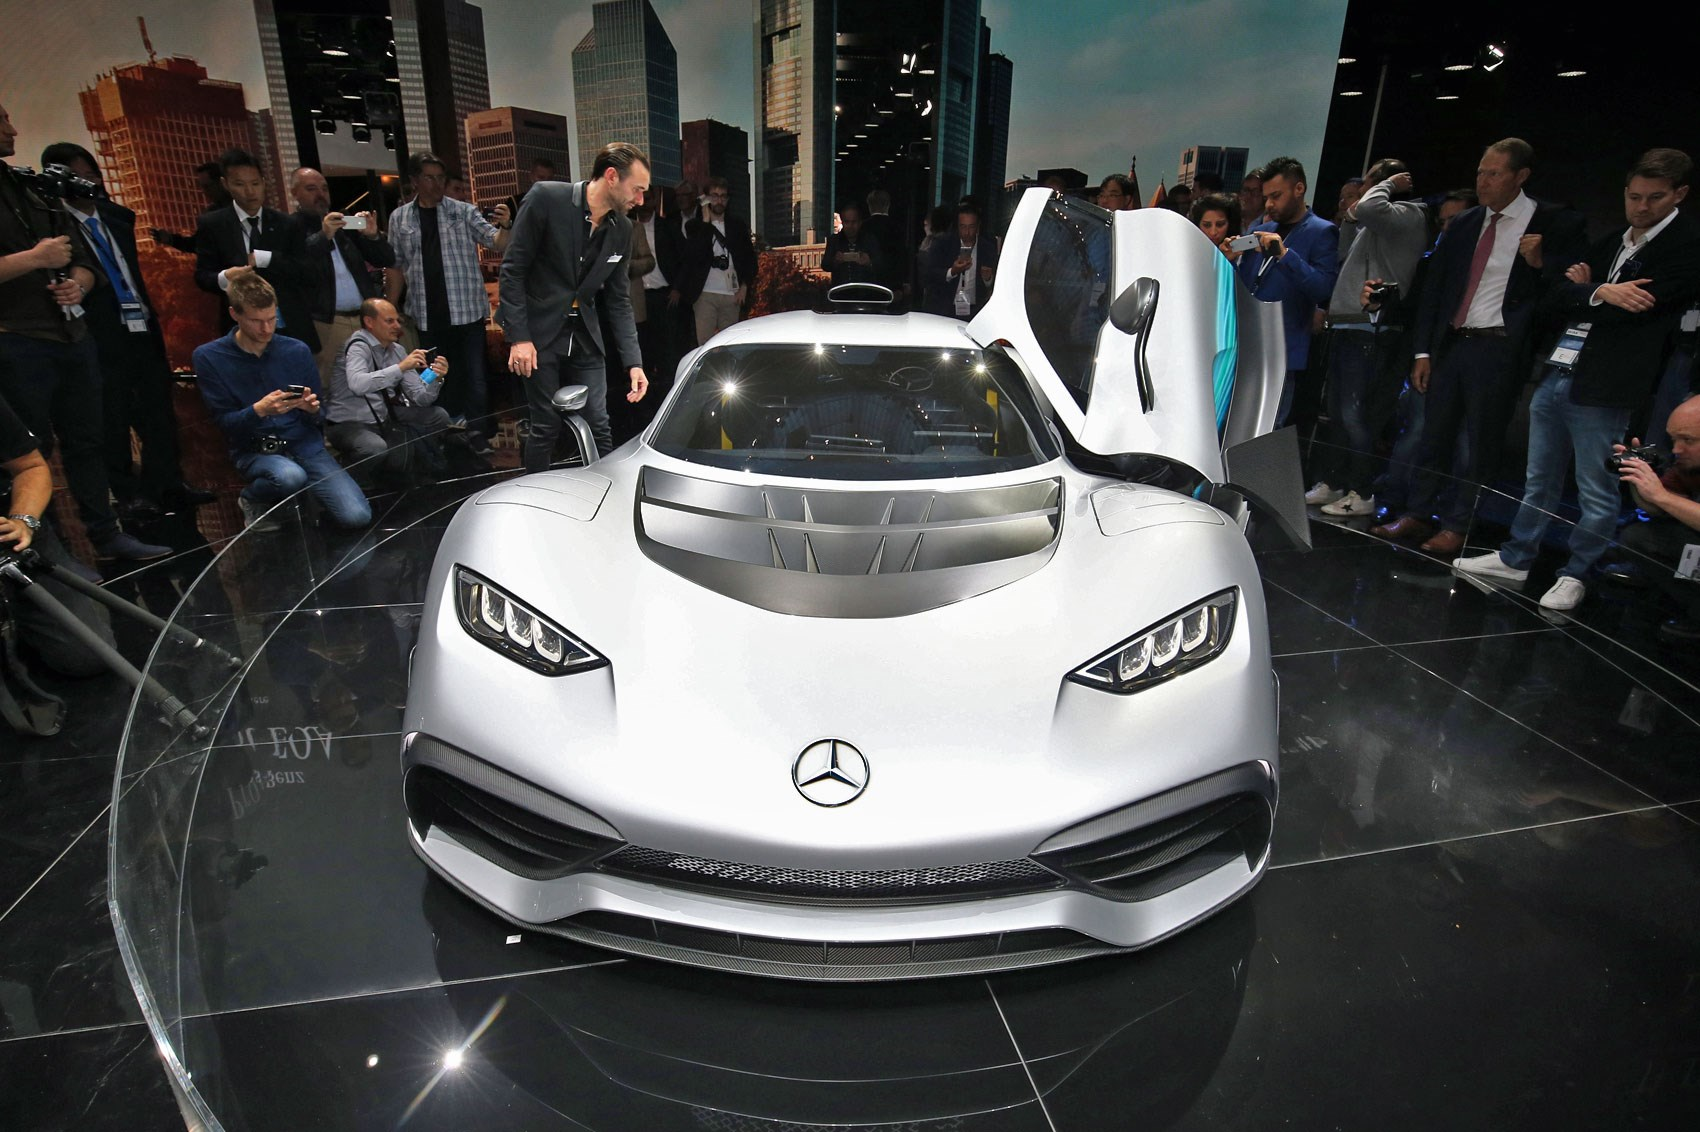 https://car-images.bauersecure.com/pagefiles/75893/24-amg-project-one.jpg